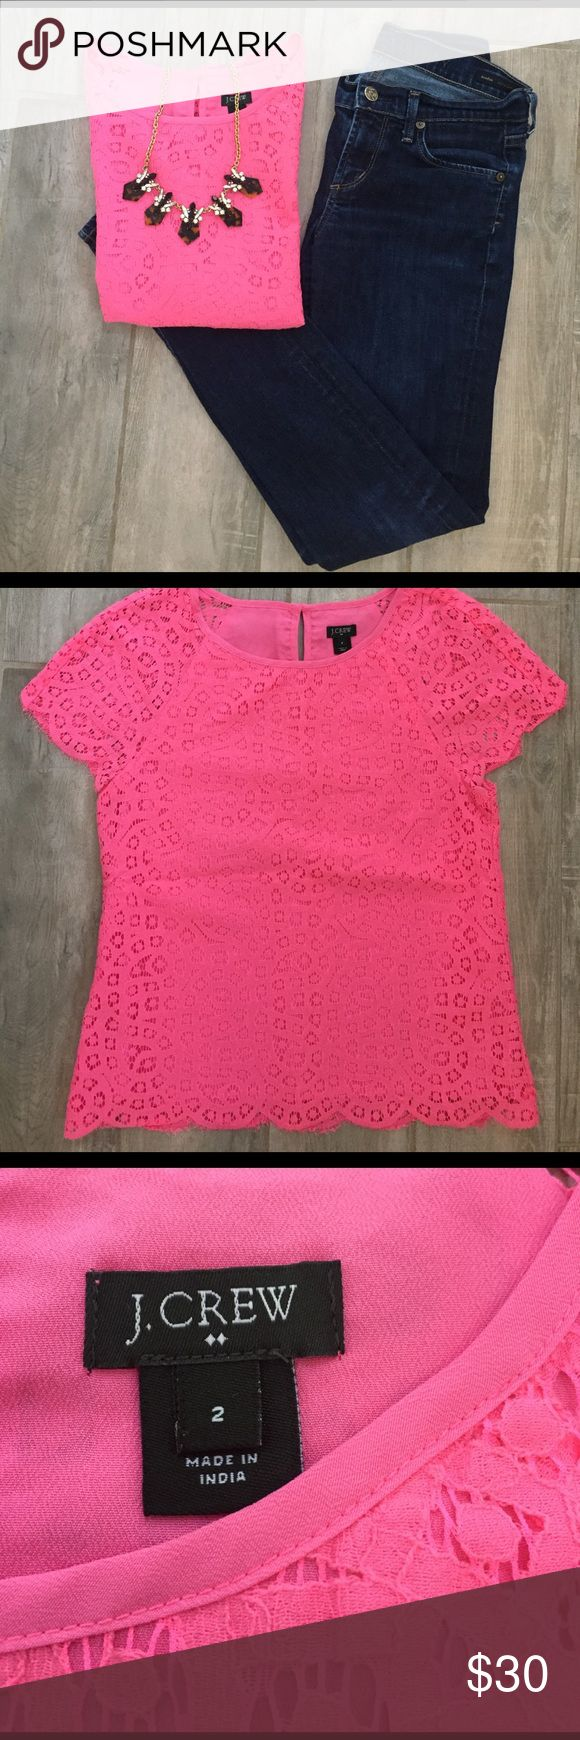 Hot pink scalloped top Hot pink lace perfect for spring & summer! Worn once; in perfect condition J. Crew Tops Tees - Short Sleeve